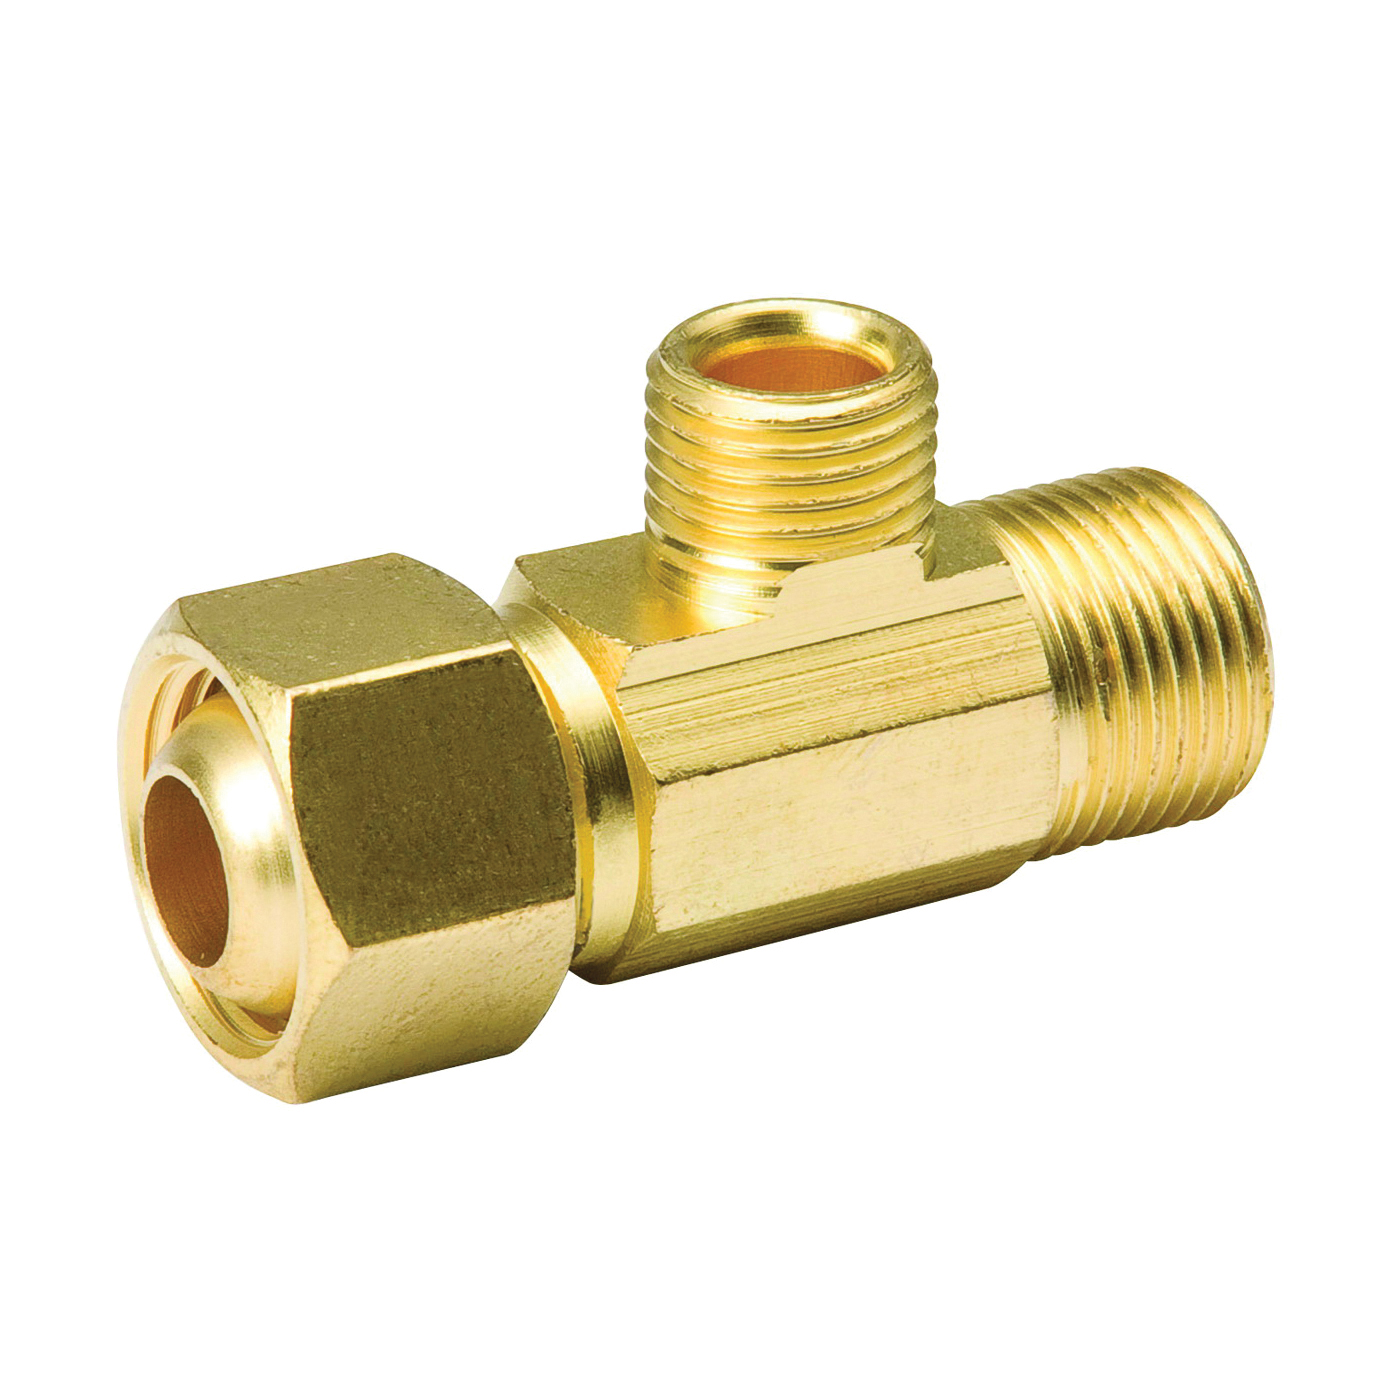 Picture of B & K ProLine 993-016NL Adapter, 3/8 in, Compression, Brass